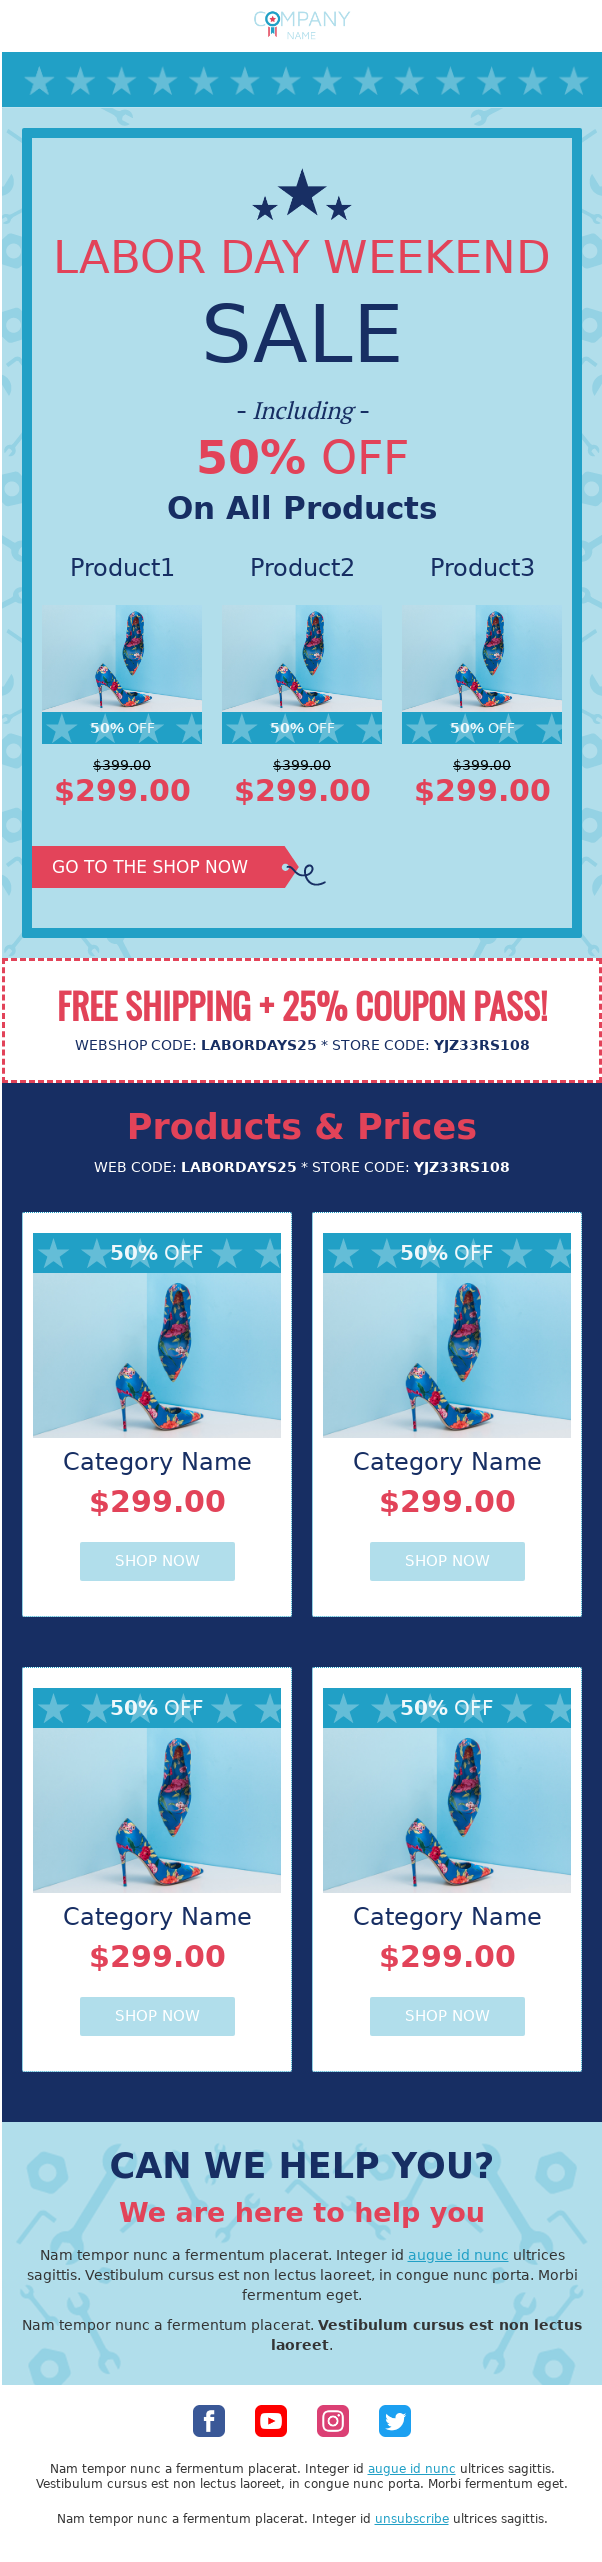 free email templates, Free Email Templates for All US Holidays: 4th Of July, Labor Day, Martin Luther King Jr. Day…